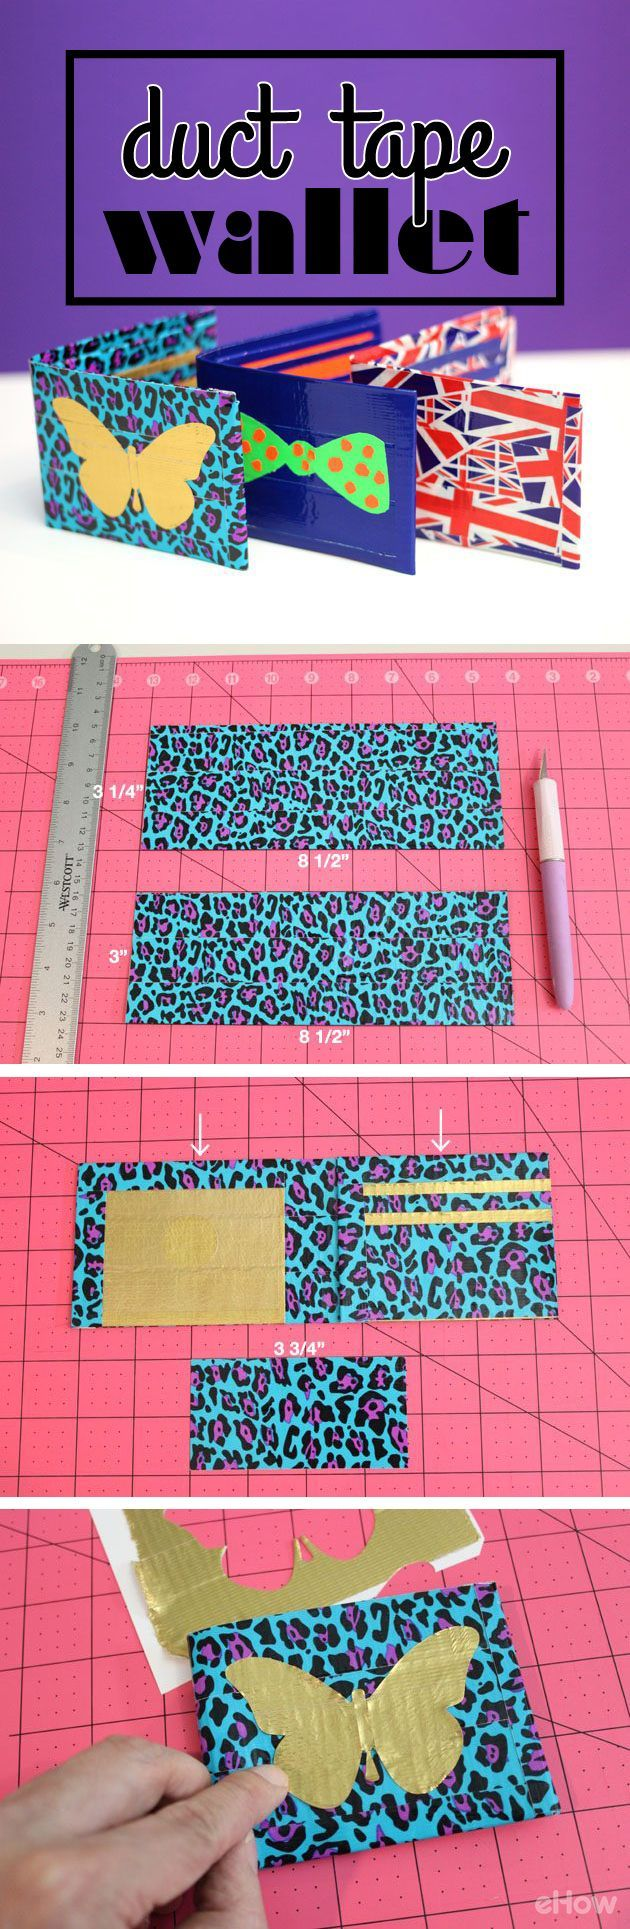 This duct tape wallet tutorial shows you just how easy it is to DIY your own. The colors and designs are endless. Such a fun project! http://www.ehow.com/how_2314612_make-duct-tape-wallets.html?utm_source=pinterest.com&utm_medium=referral&utm_content=inline&utm_campaign=fanpage